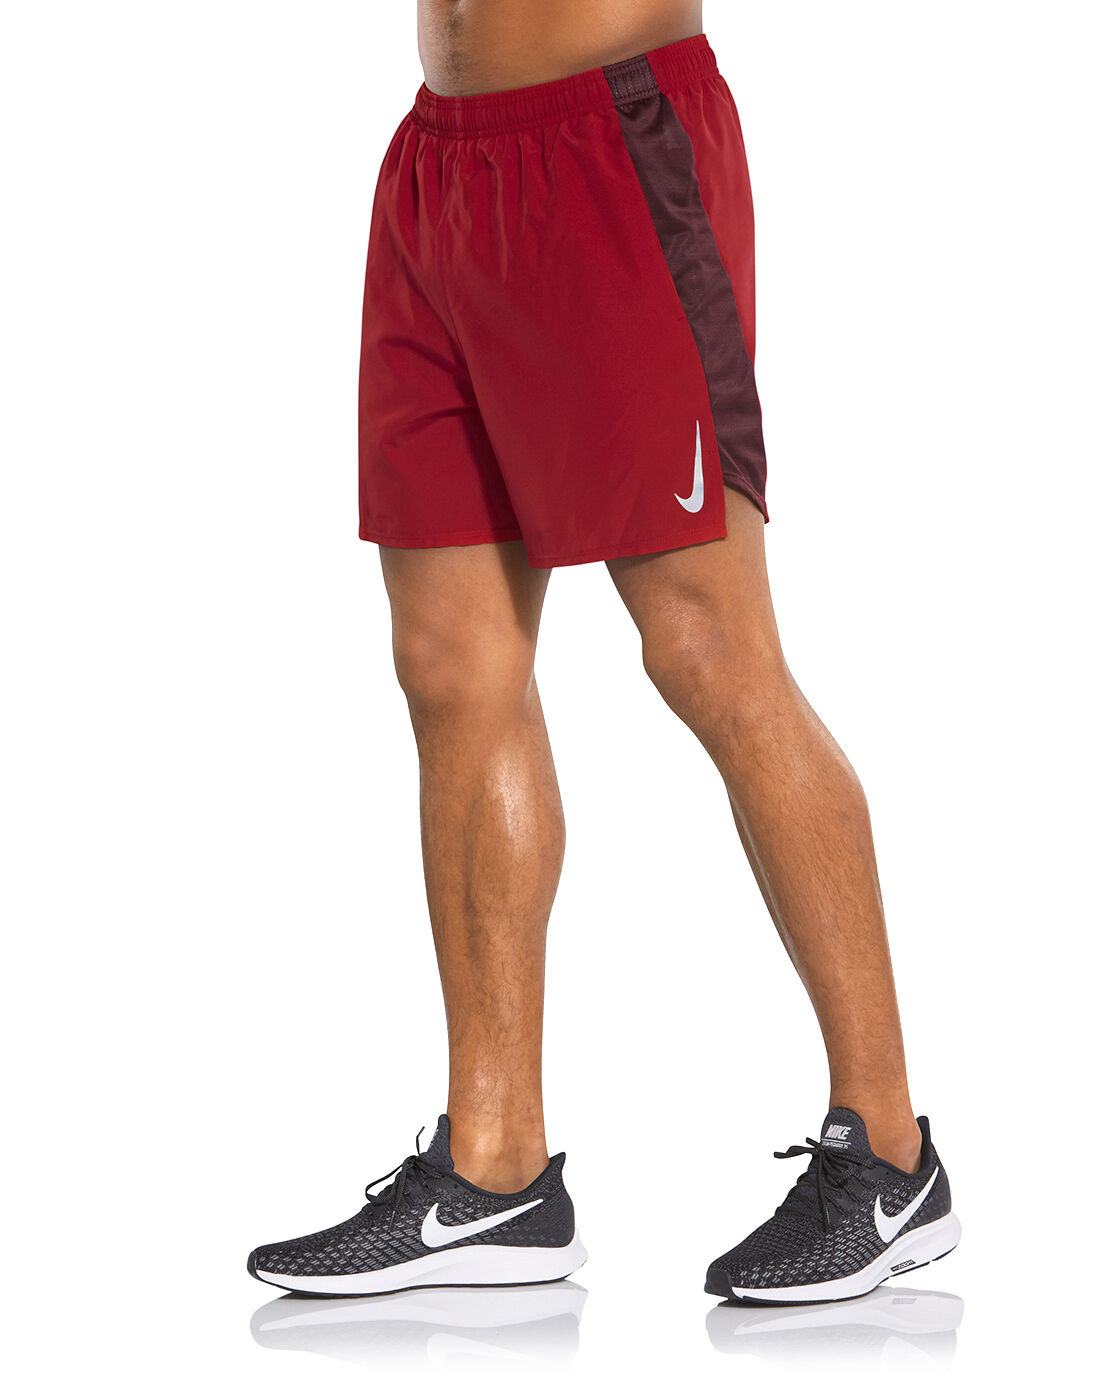 5 Sports Life Nike Red Style Shorts Men's Inch Challenger 8ptZnq